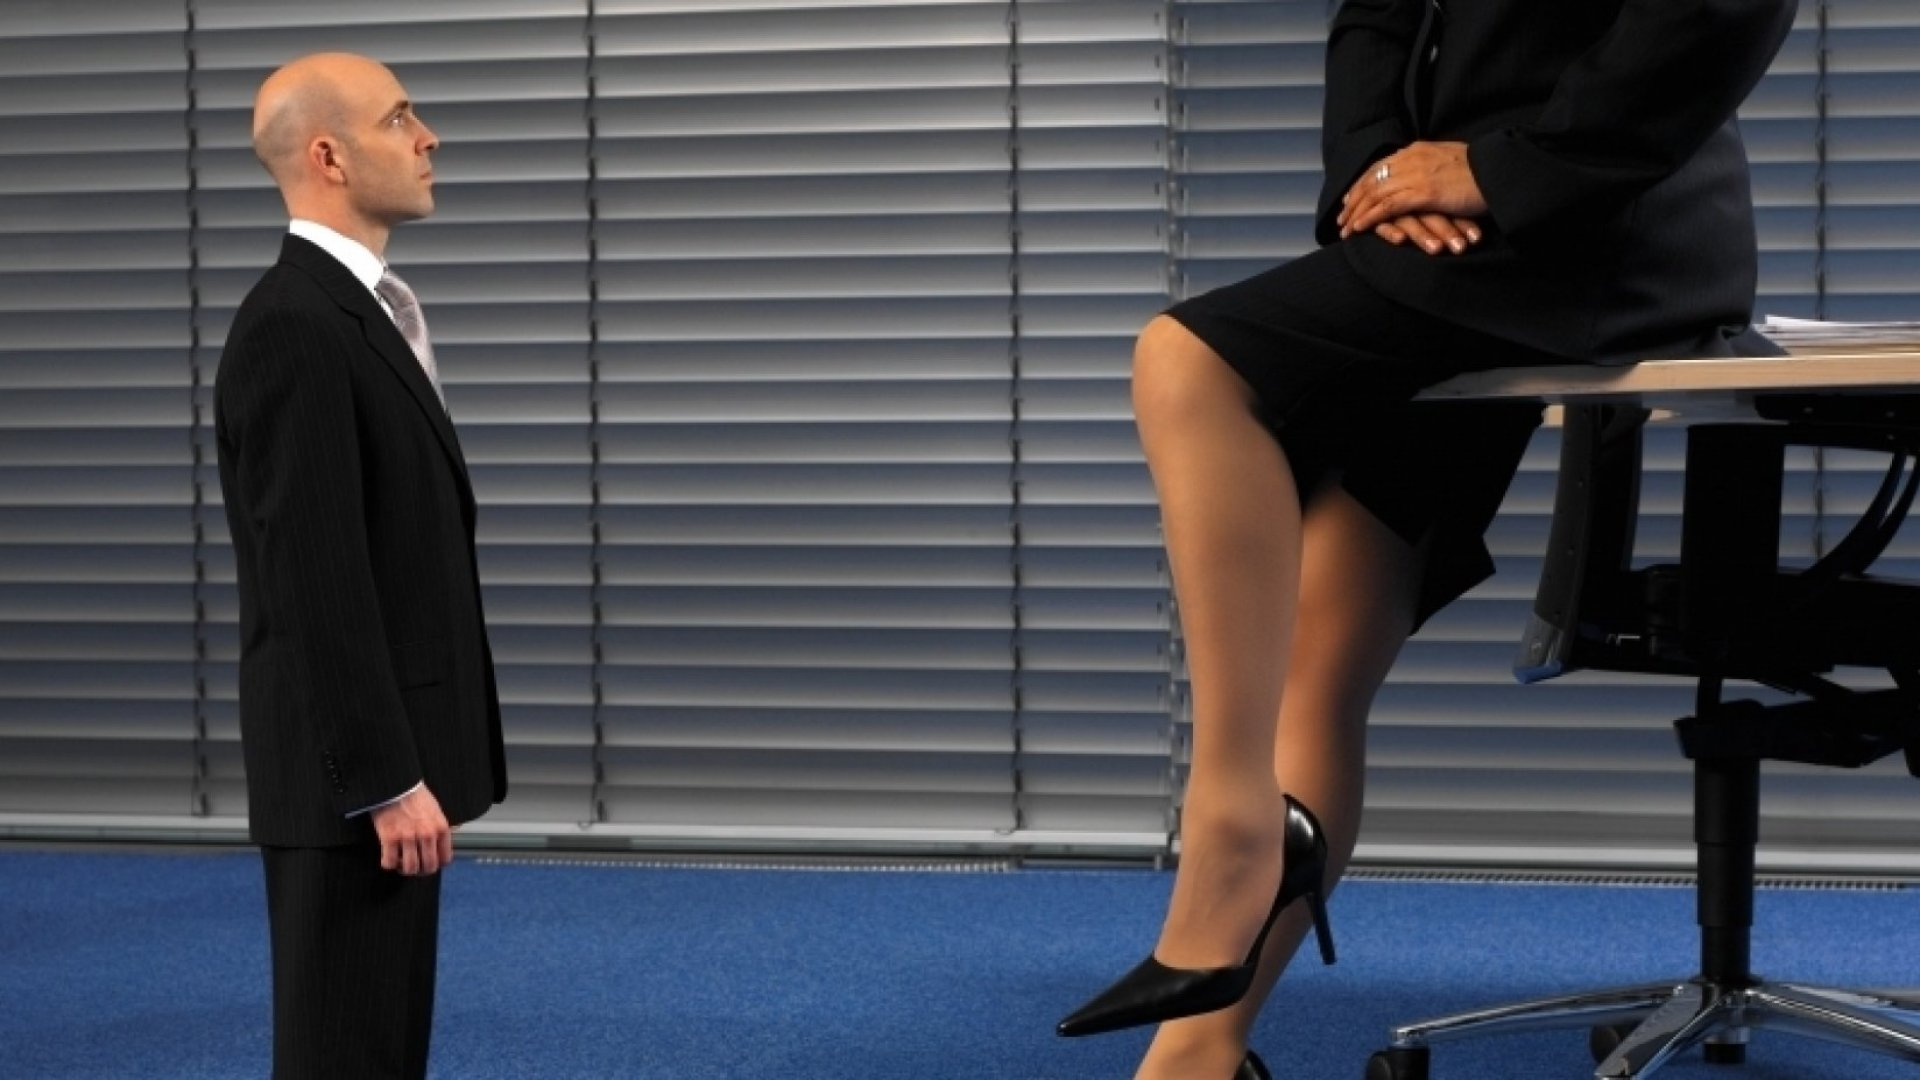 Men Who Fear Powerful Women Are Wimps